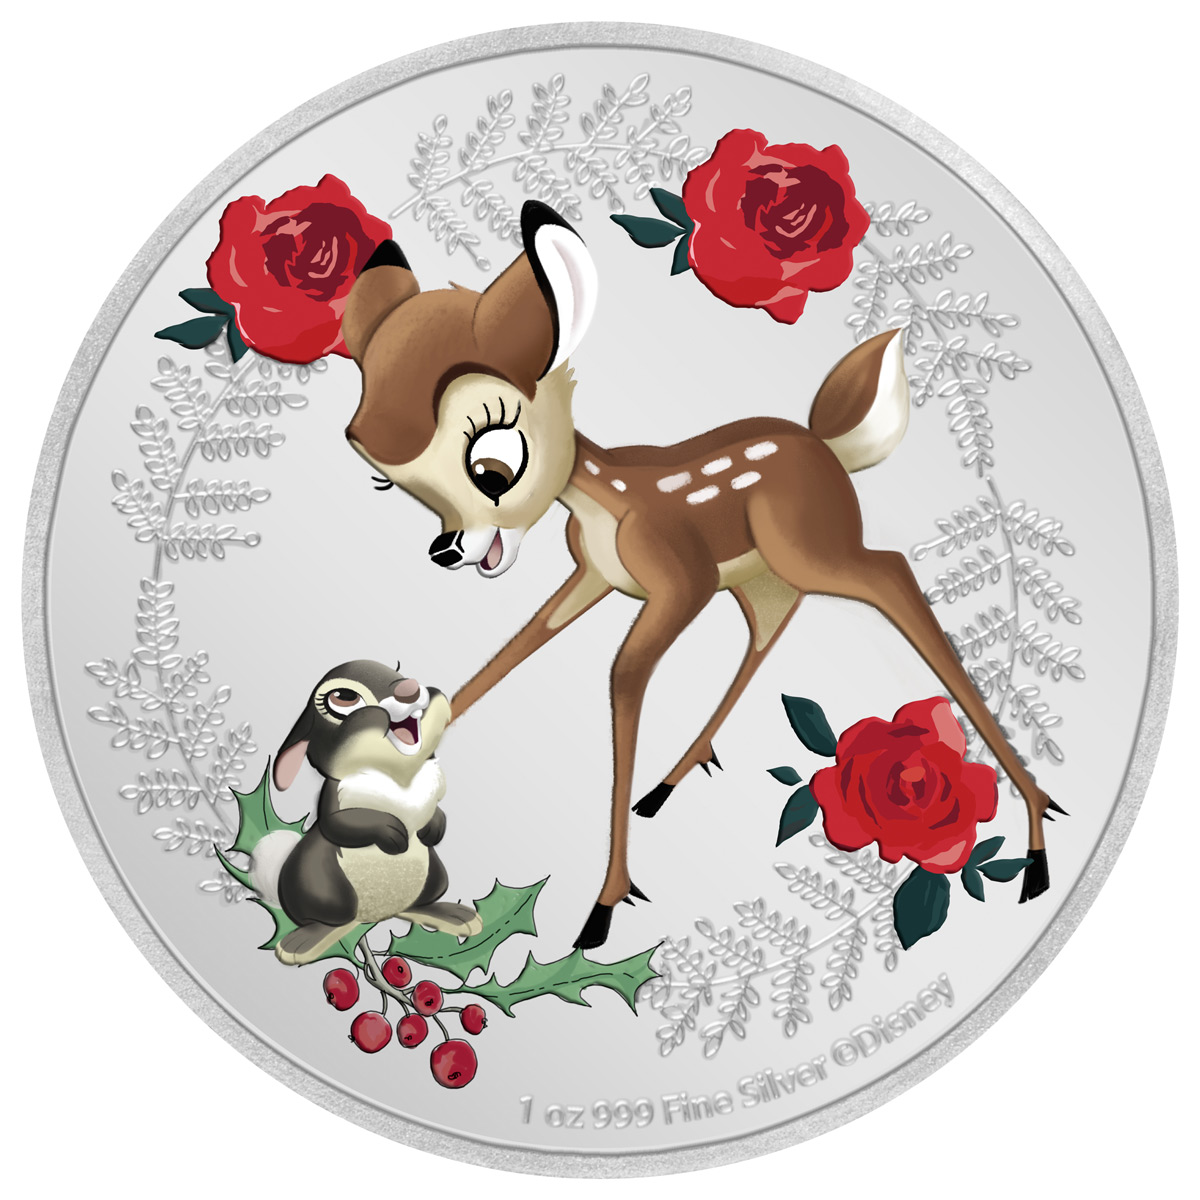 2020 Niue Disney Season's Greetings - Bambi and Thumper 1 oz Silver Colorized Proof $2 Coin GEM Proof OGP